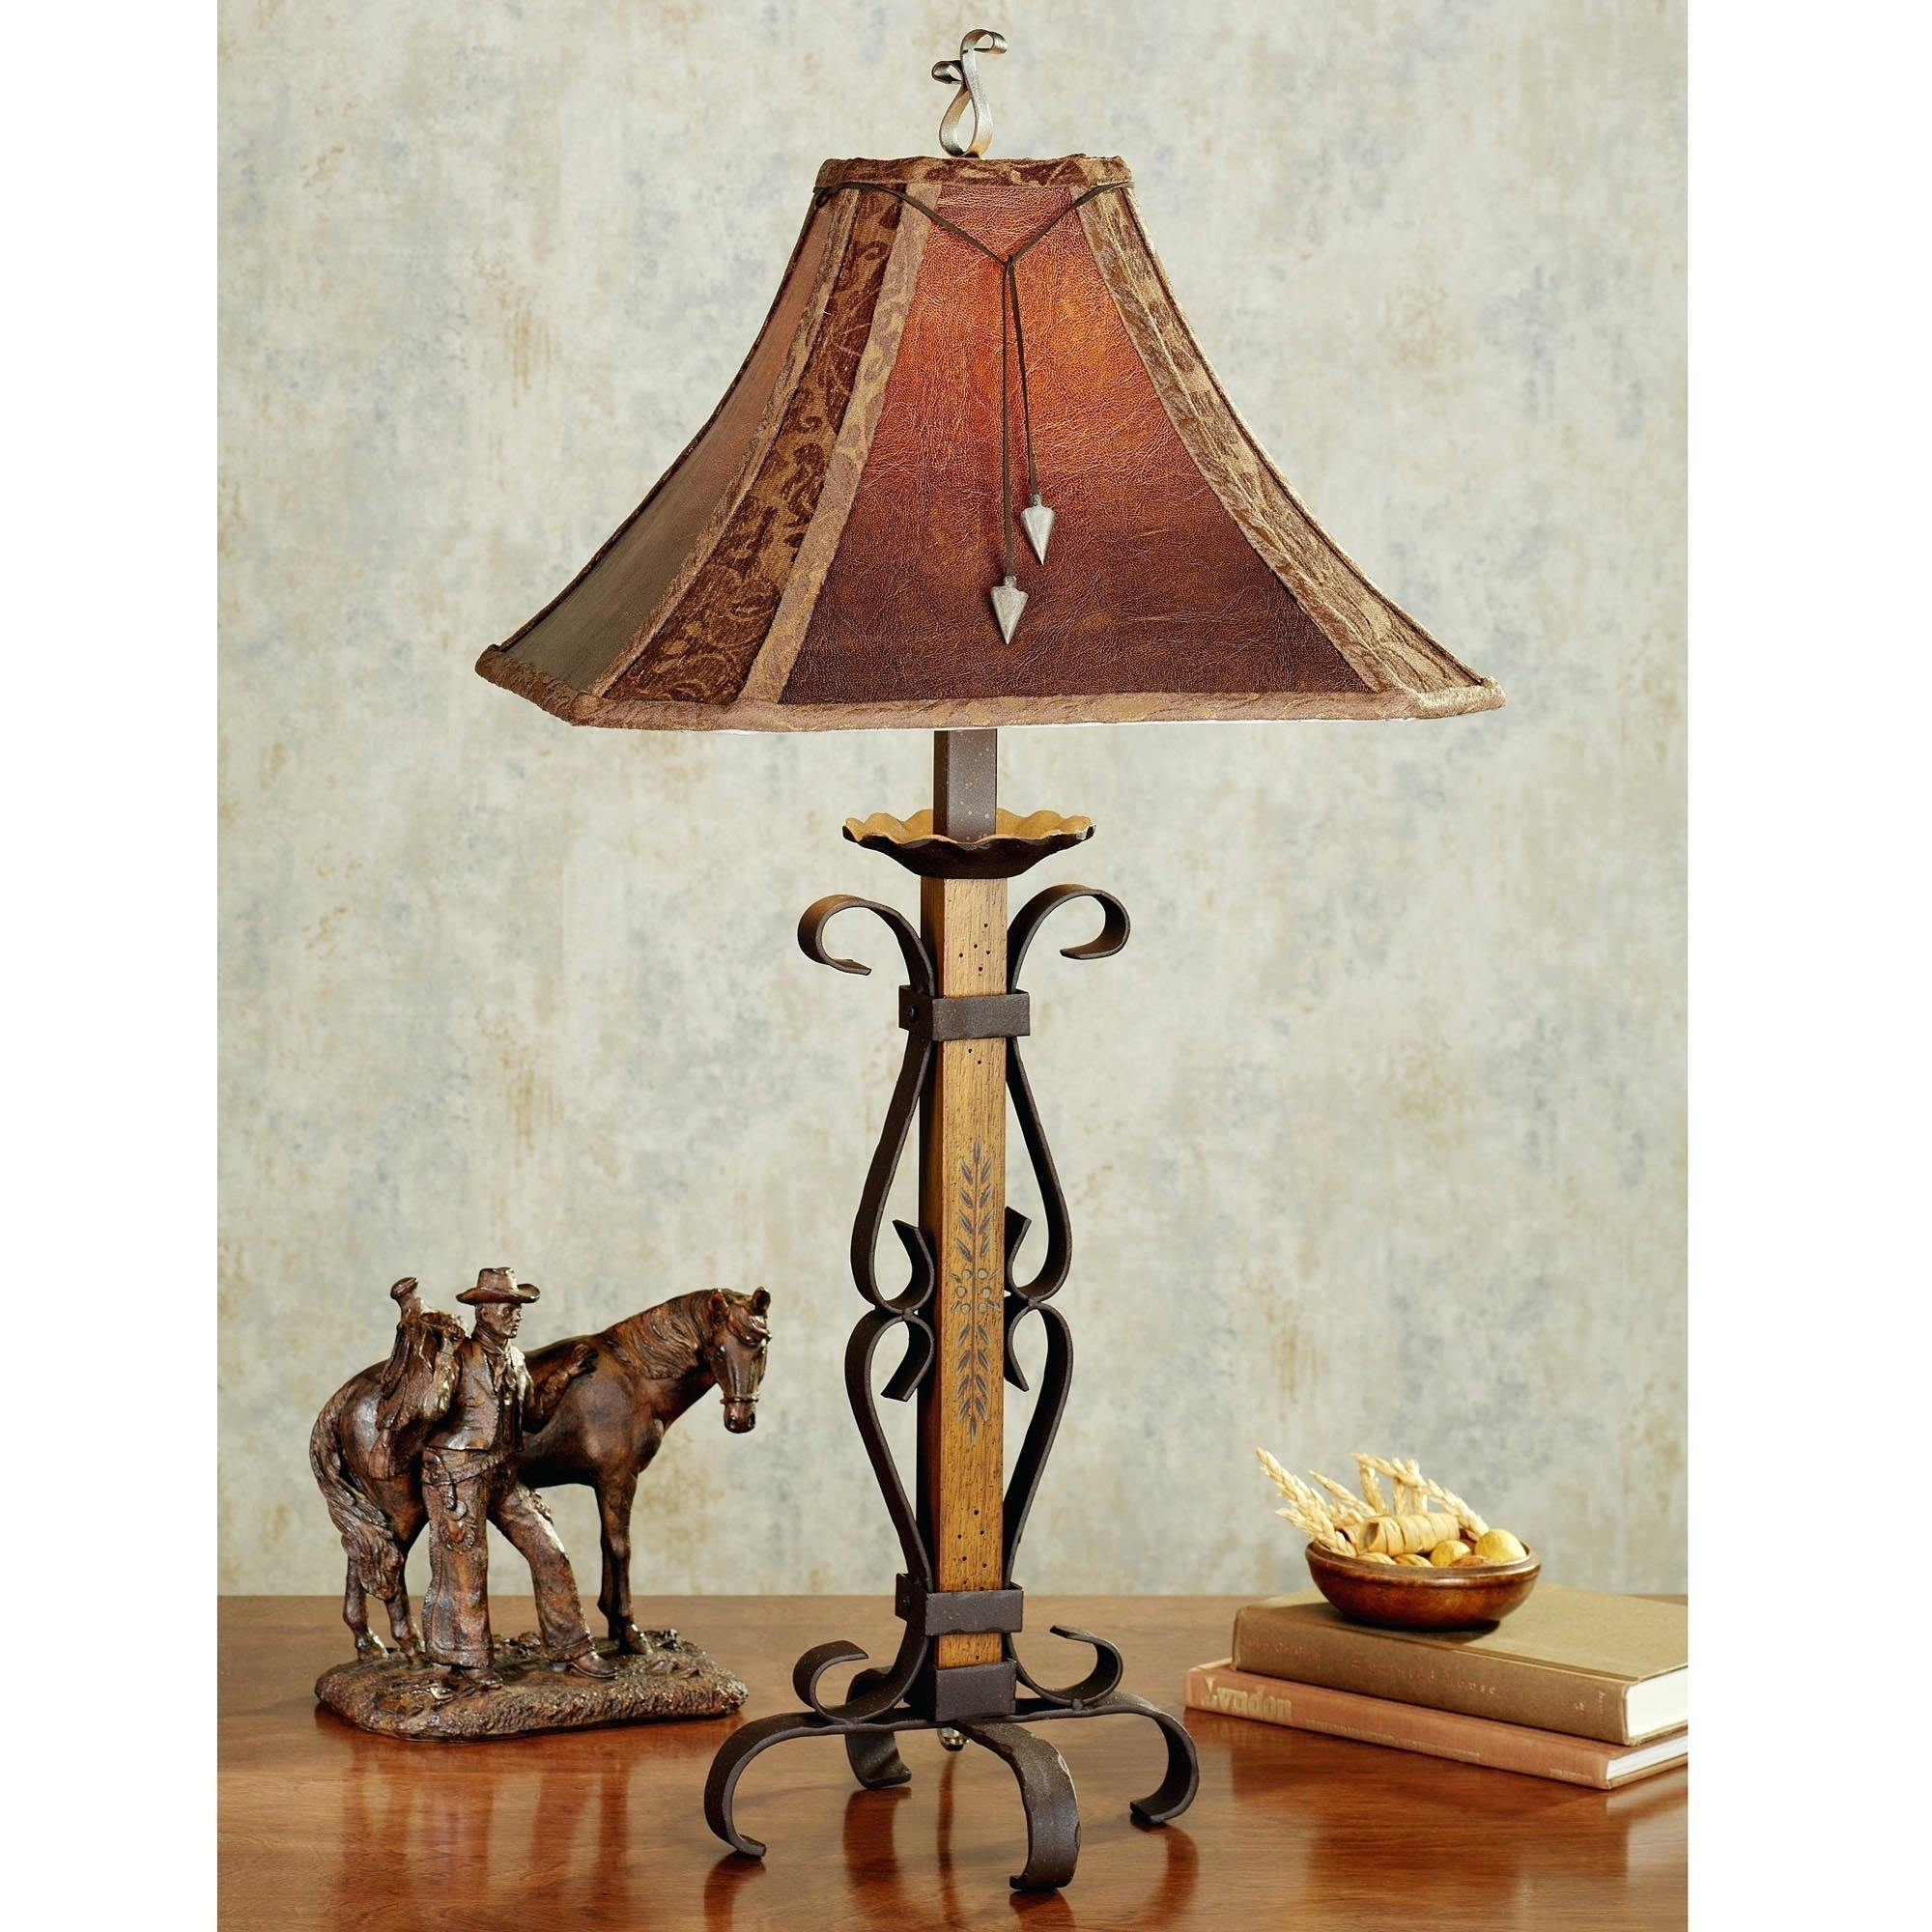 Top 68 Skookum Tuscan Style Table Lamps Old World Vintage For Living Regarding Tuscan Table Lamps For Living Room (View 6 of 15)